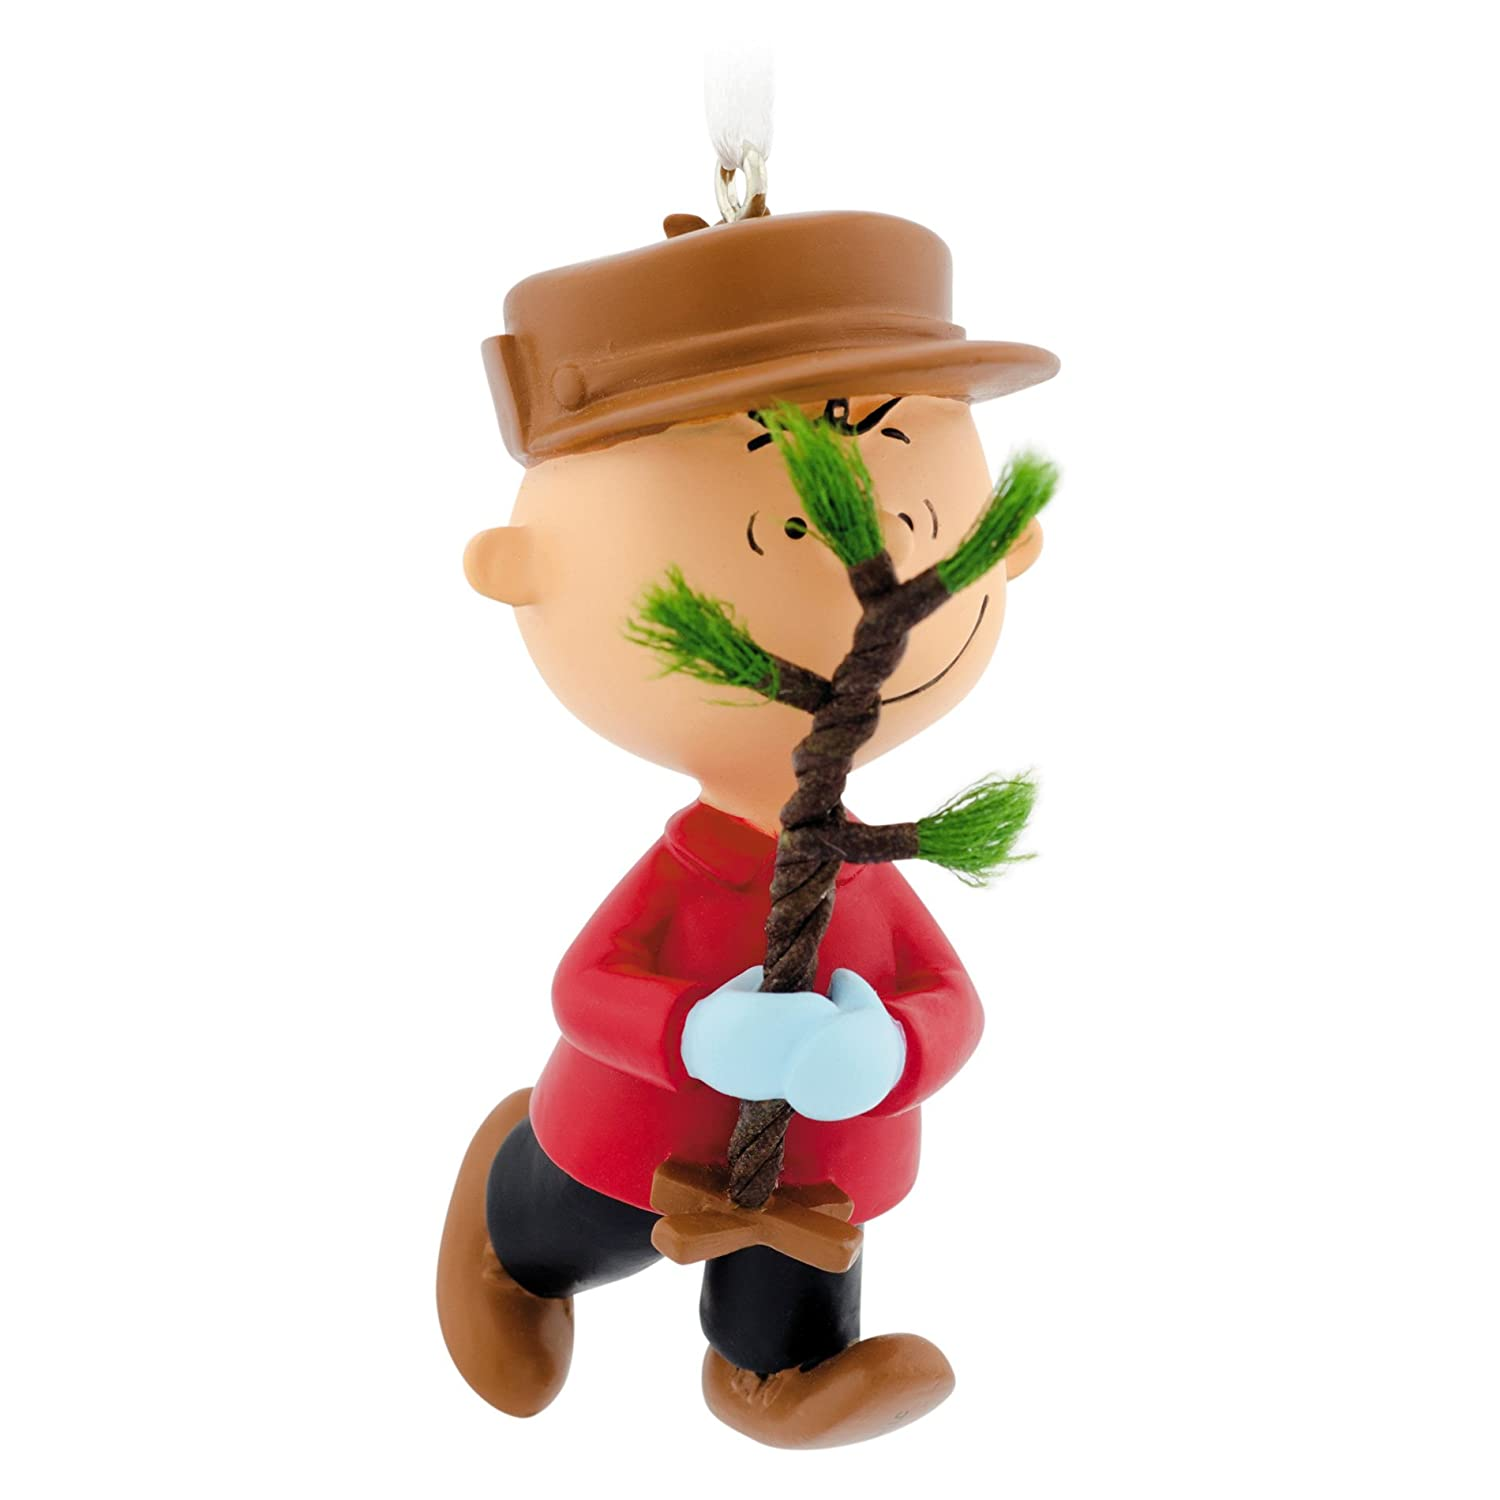 Snoopy outdoor christmas decorations - Amazon Com Hallmark Peanuts Charlie Brown With Tree Christmas Ornament Home Kitchen